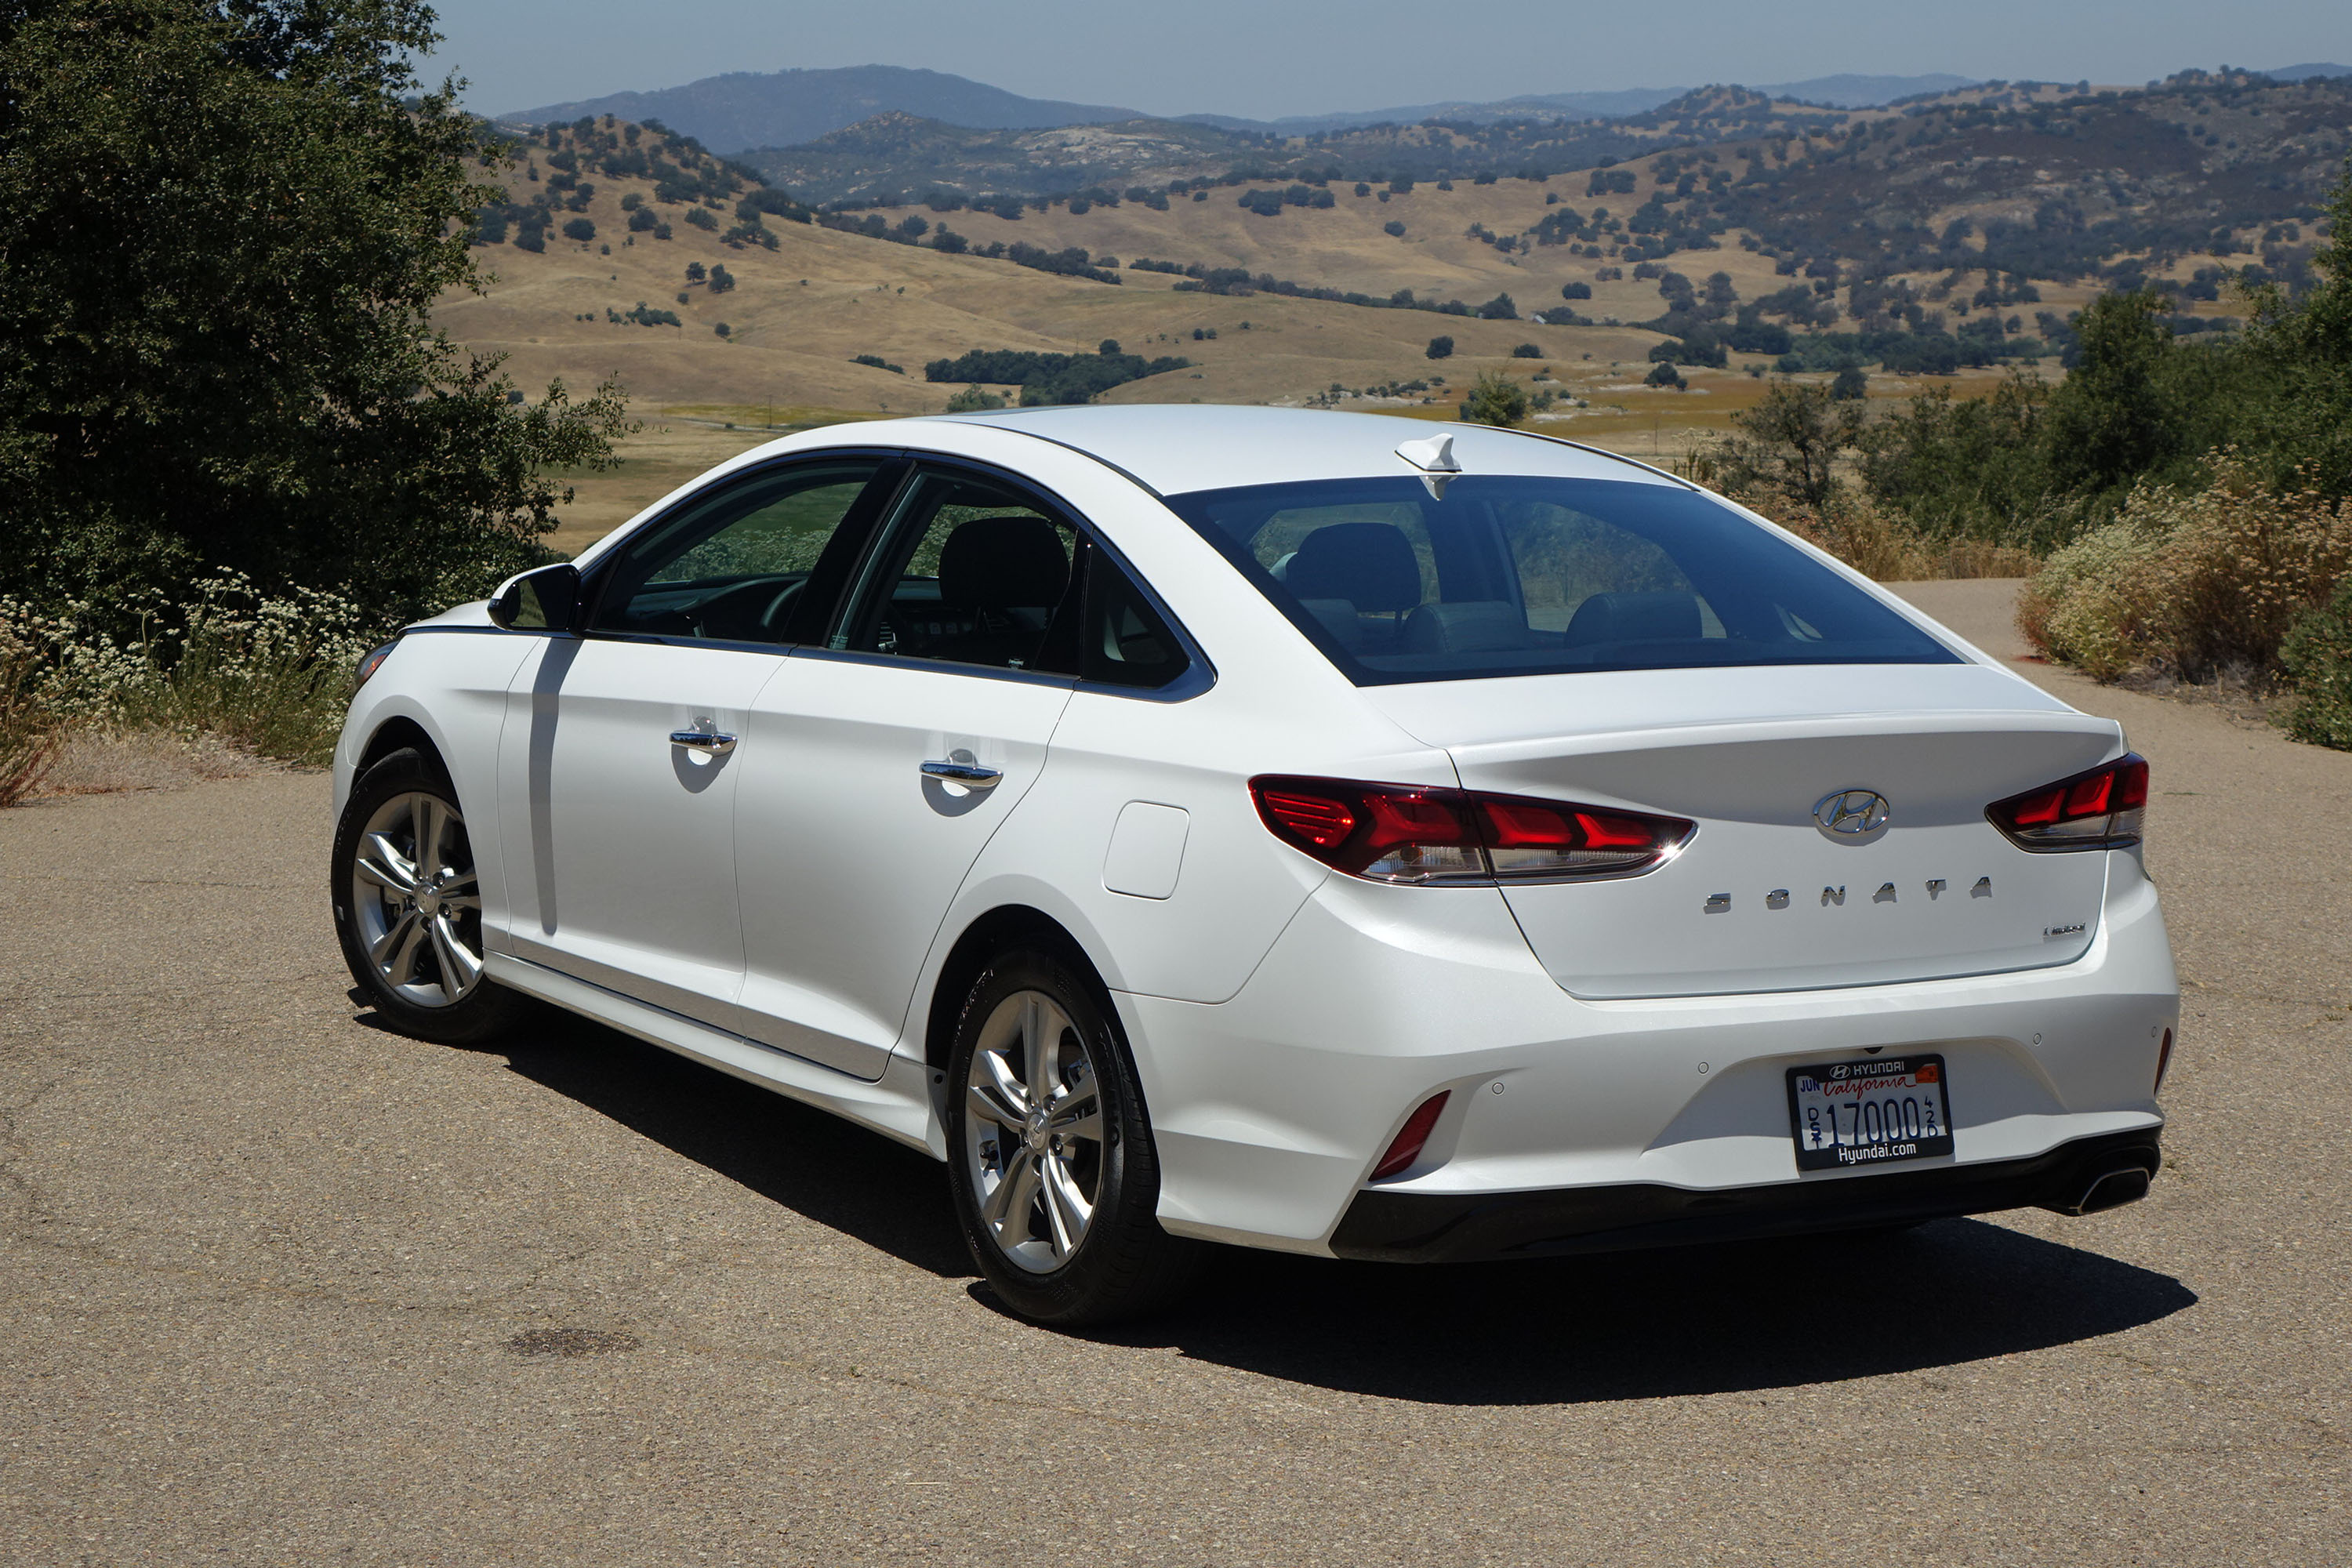 New Honda Accord >> 2018 Hyundai Sonata first drive: Finally looking the part